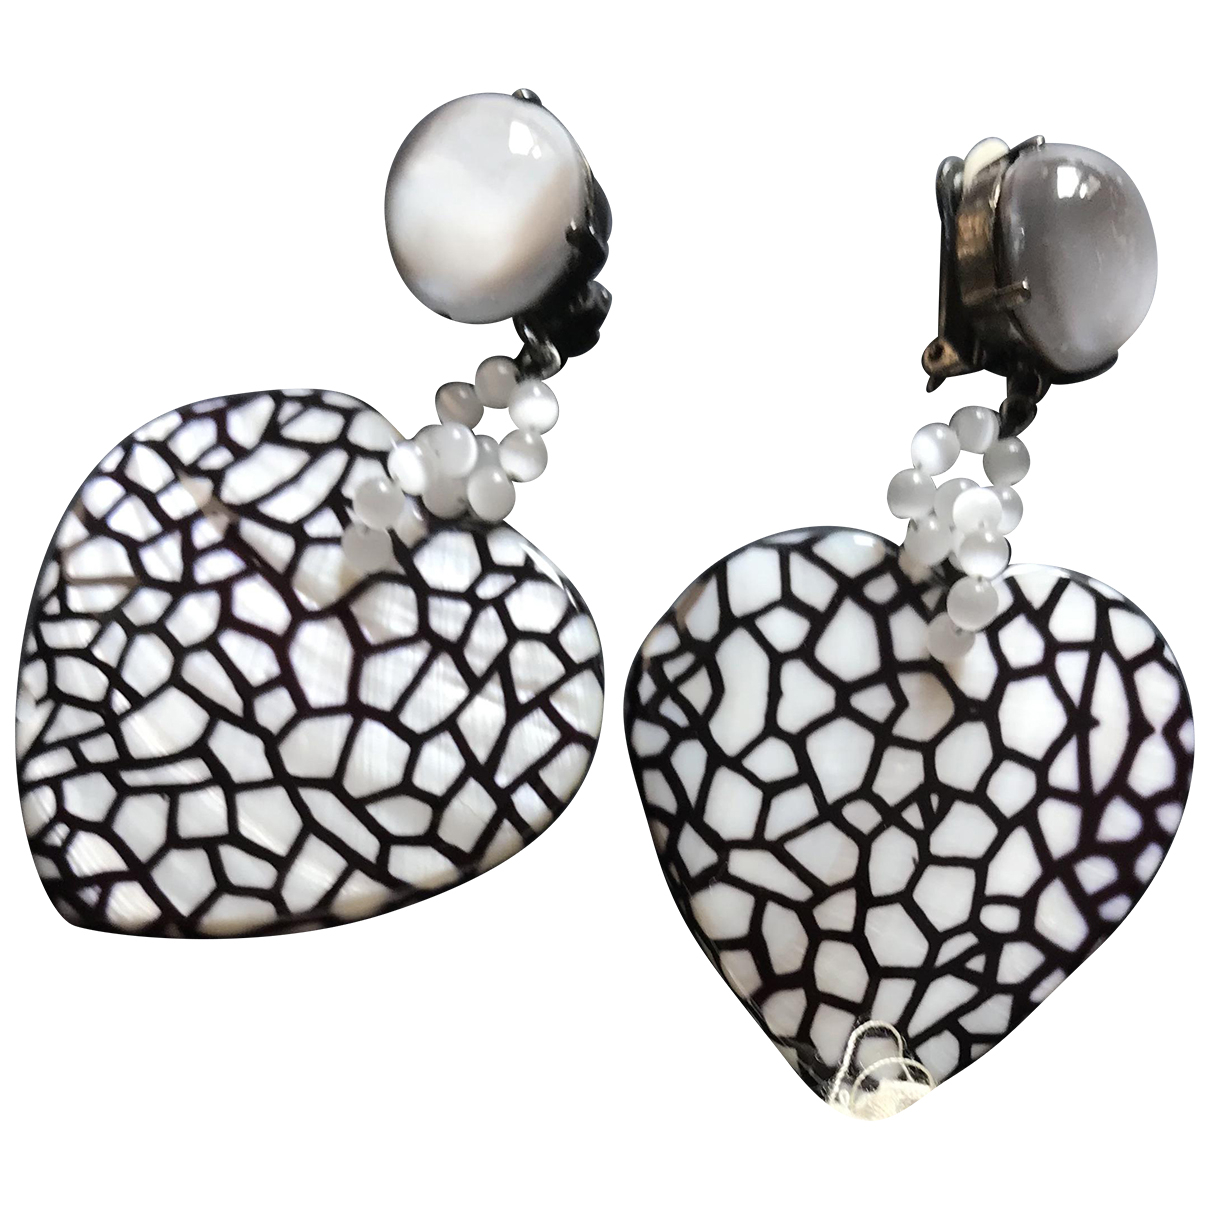 Giorgio Armani N Anthracite Ceramic Earrings for Women N